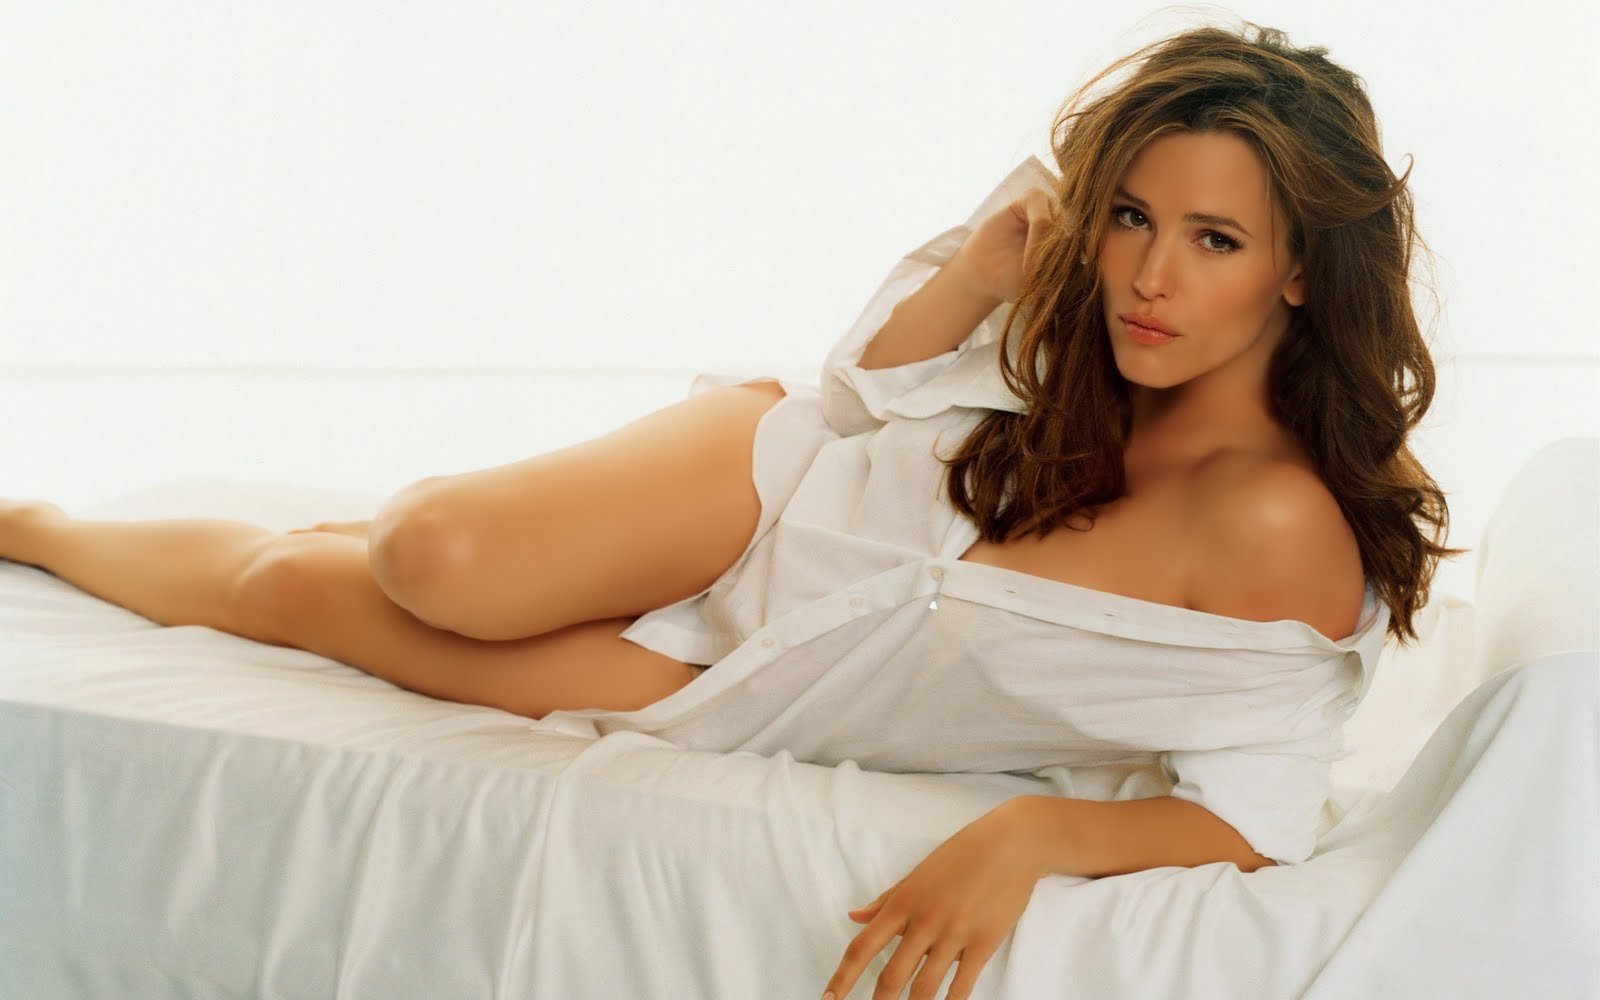 The Hottest Jennifer Garner Photos - Ranker